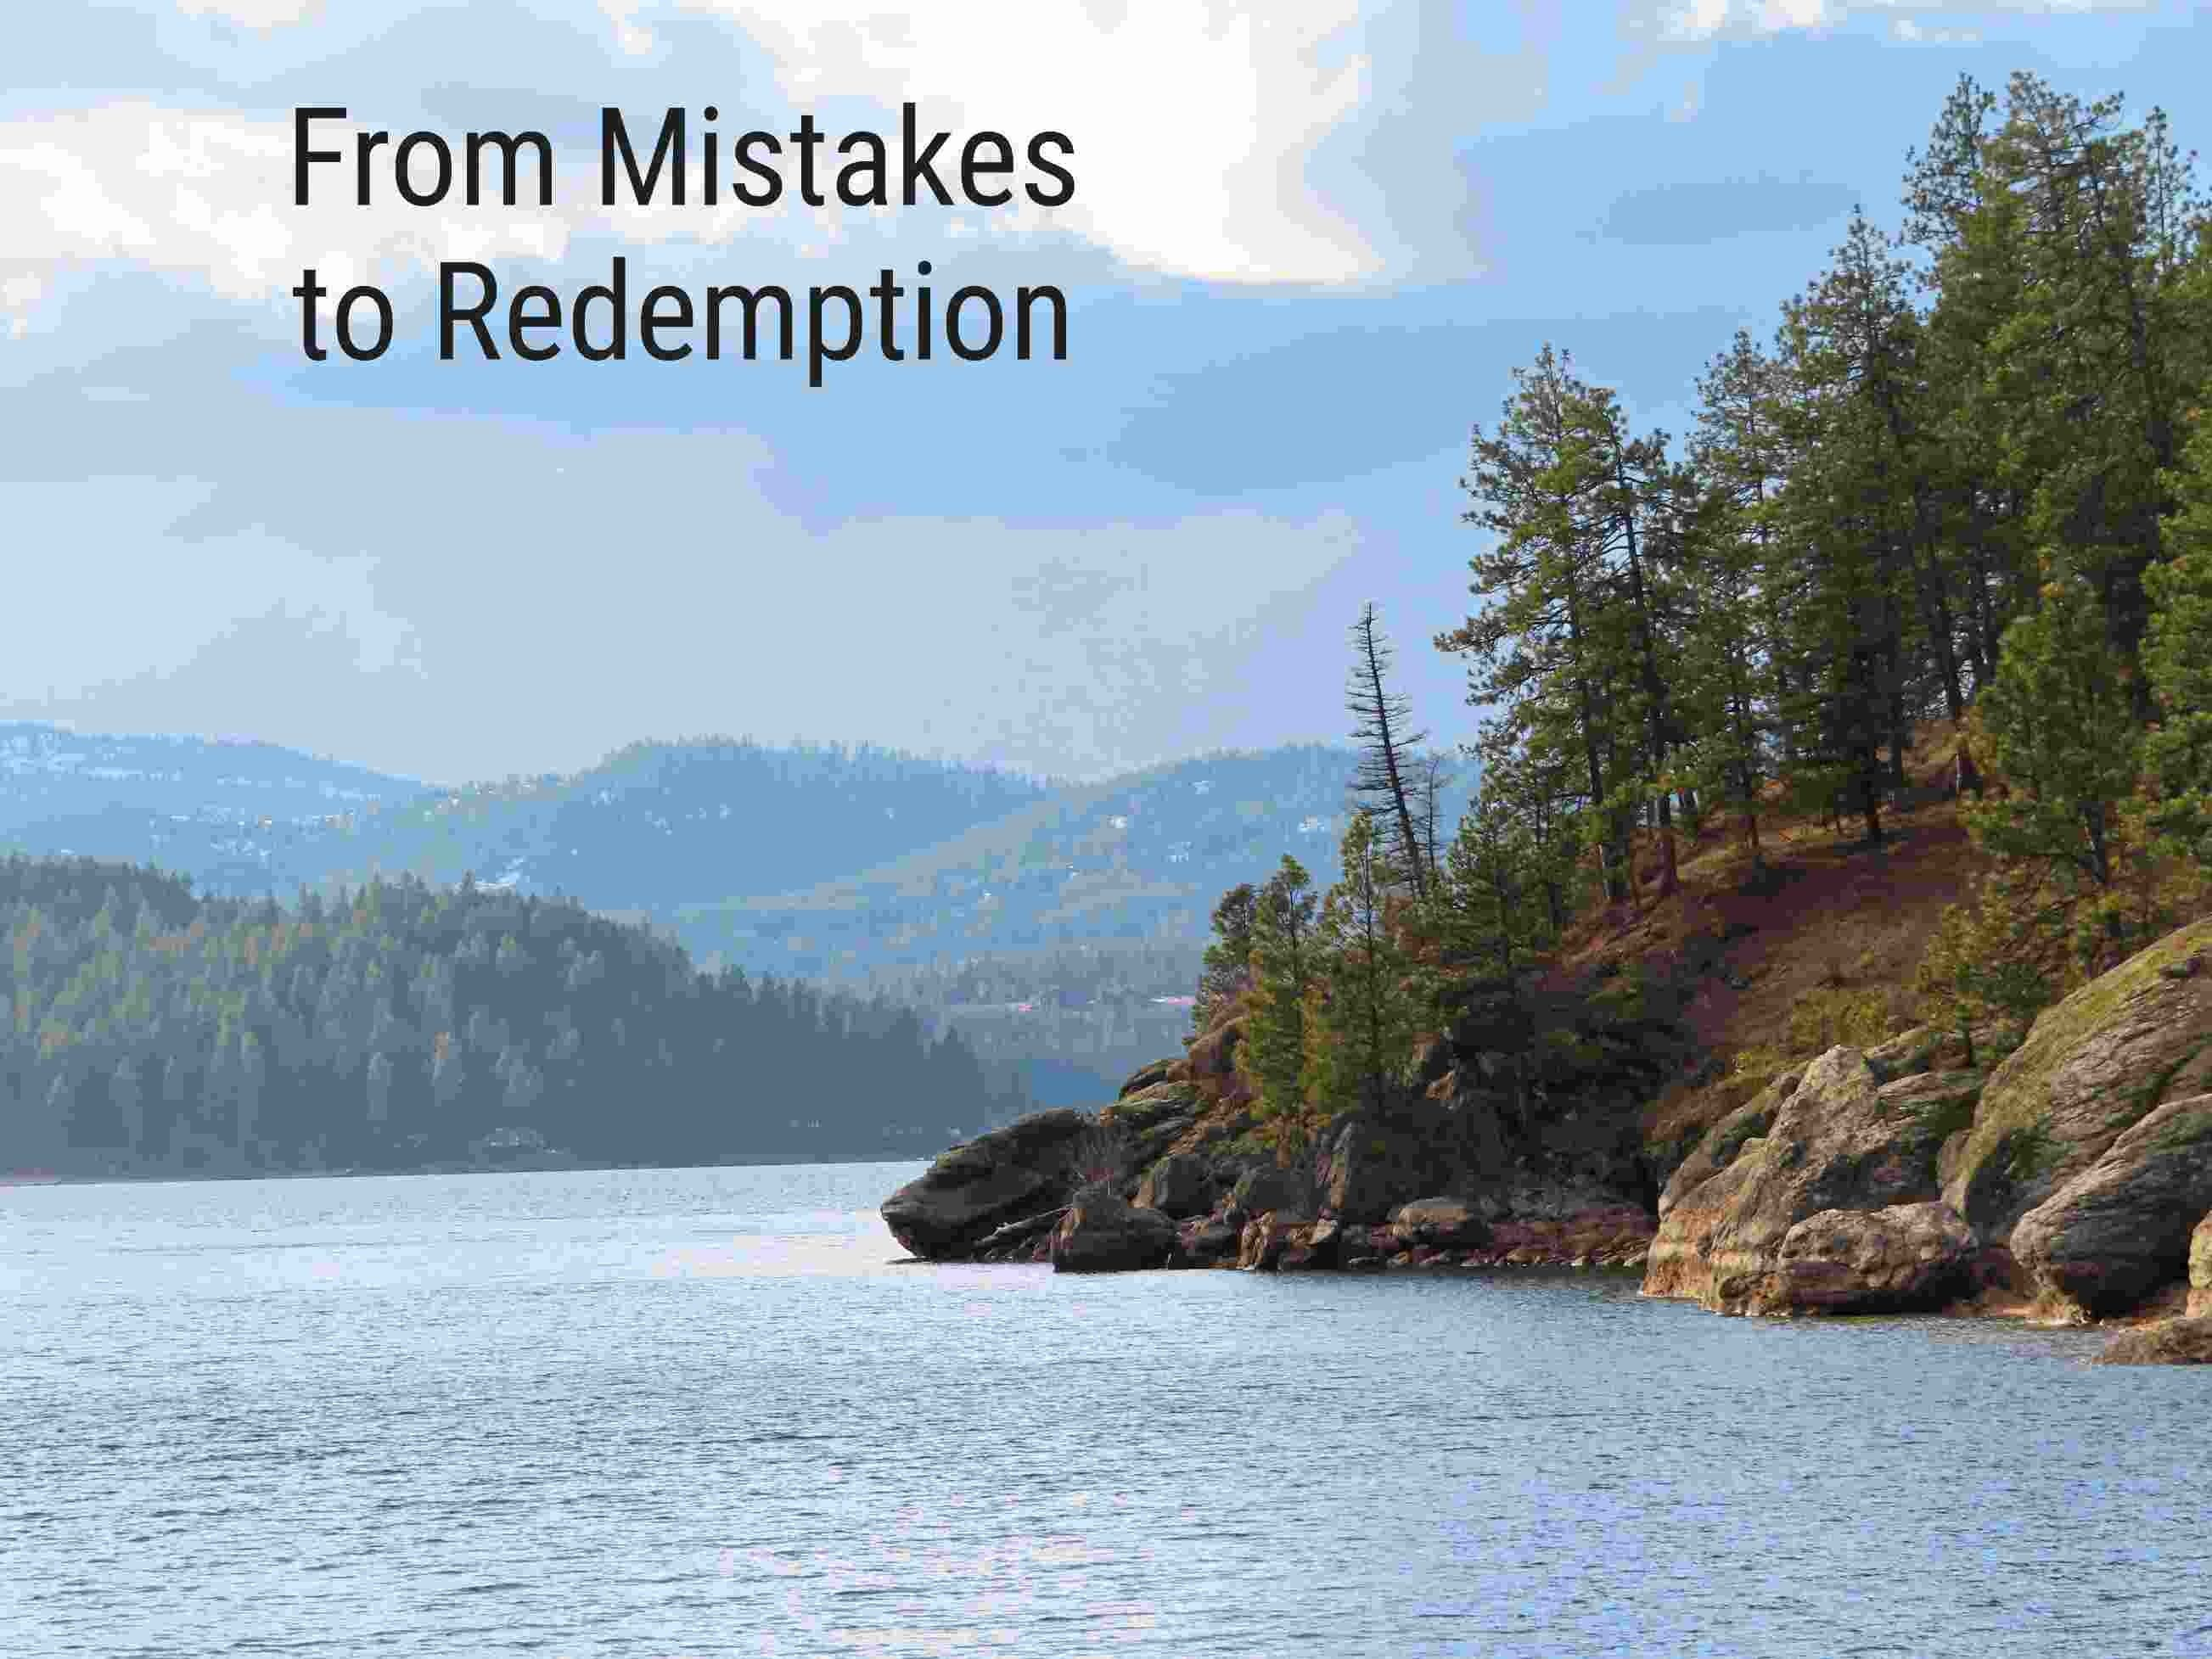 From Mistakes to Redemption